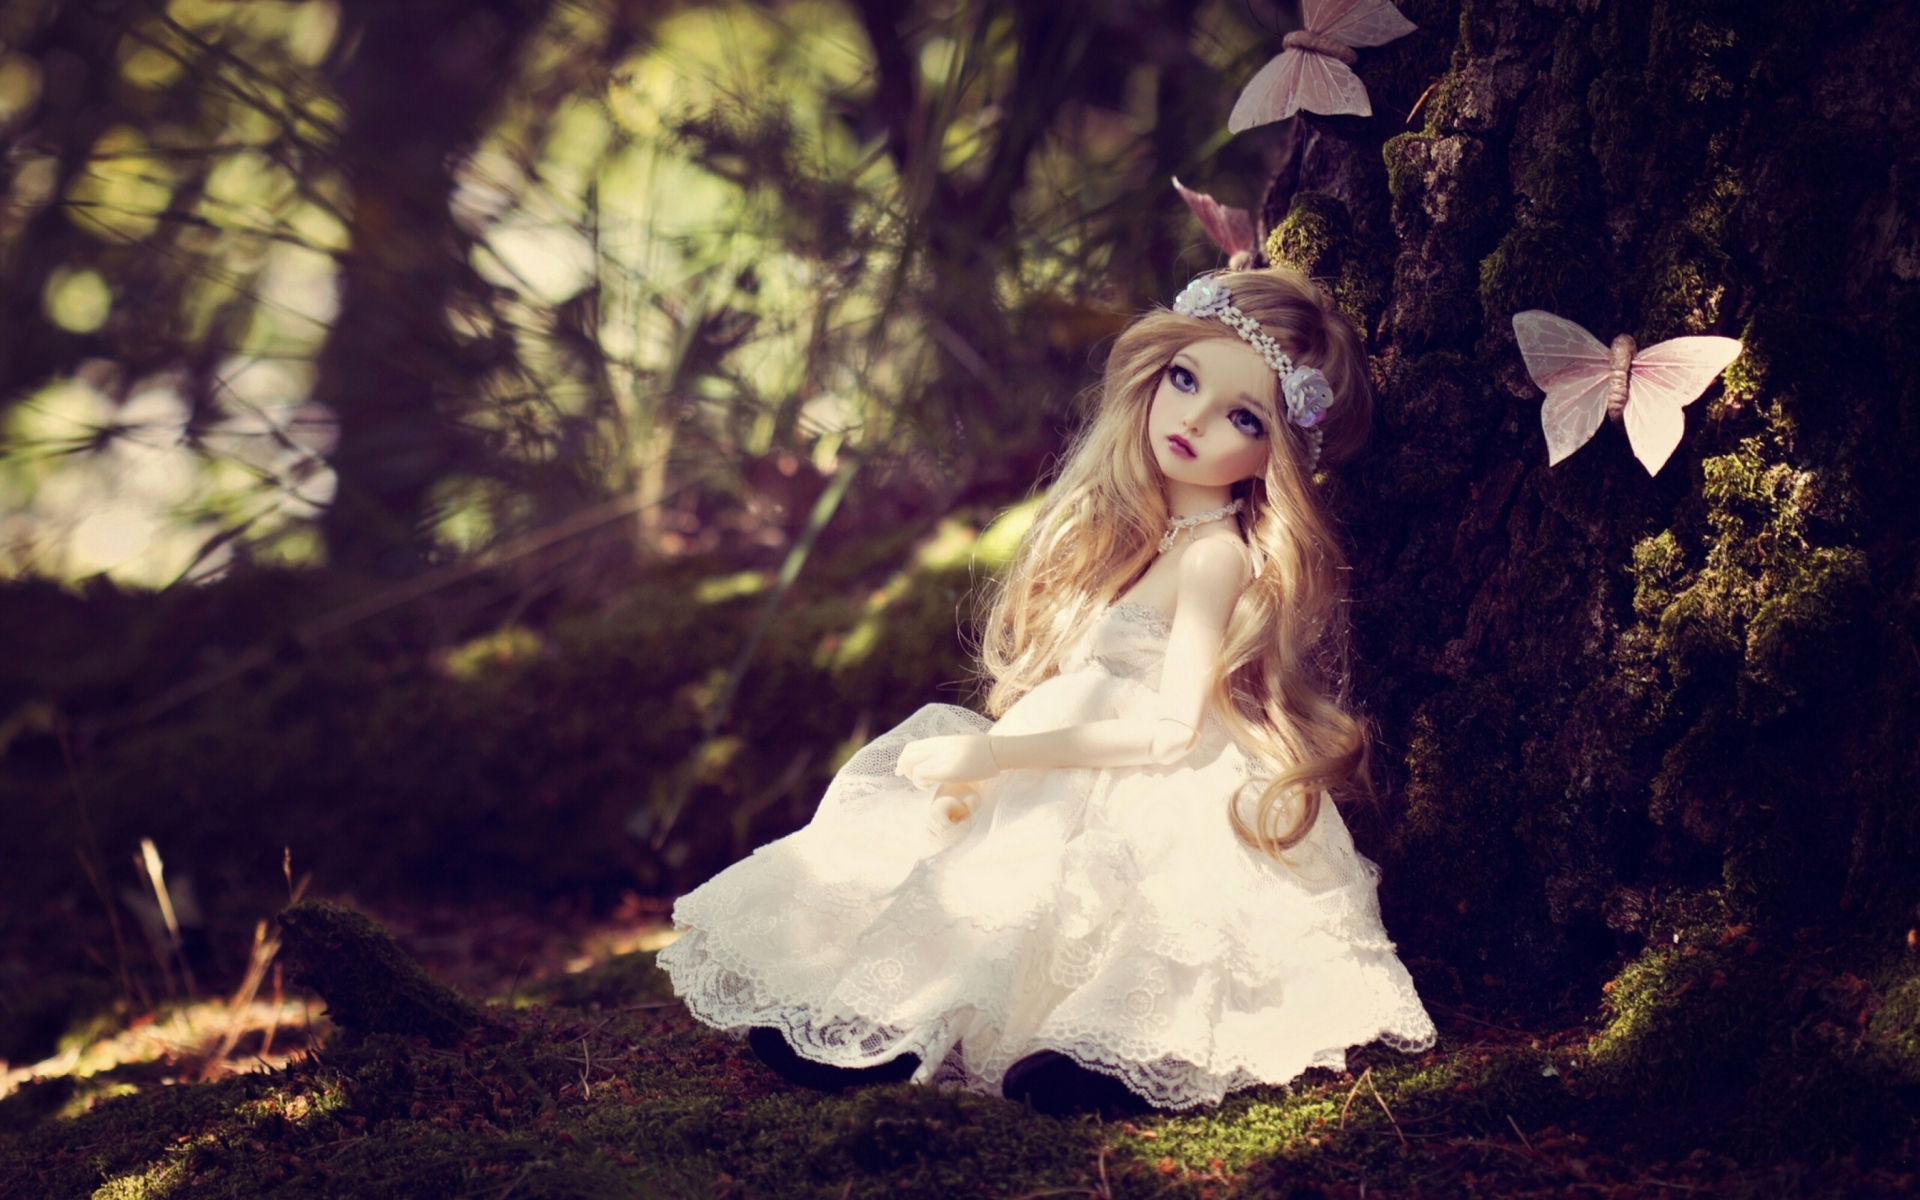 14 Hd Beautiful Doll Wallpapers On Wallpapersafari